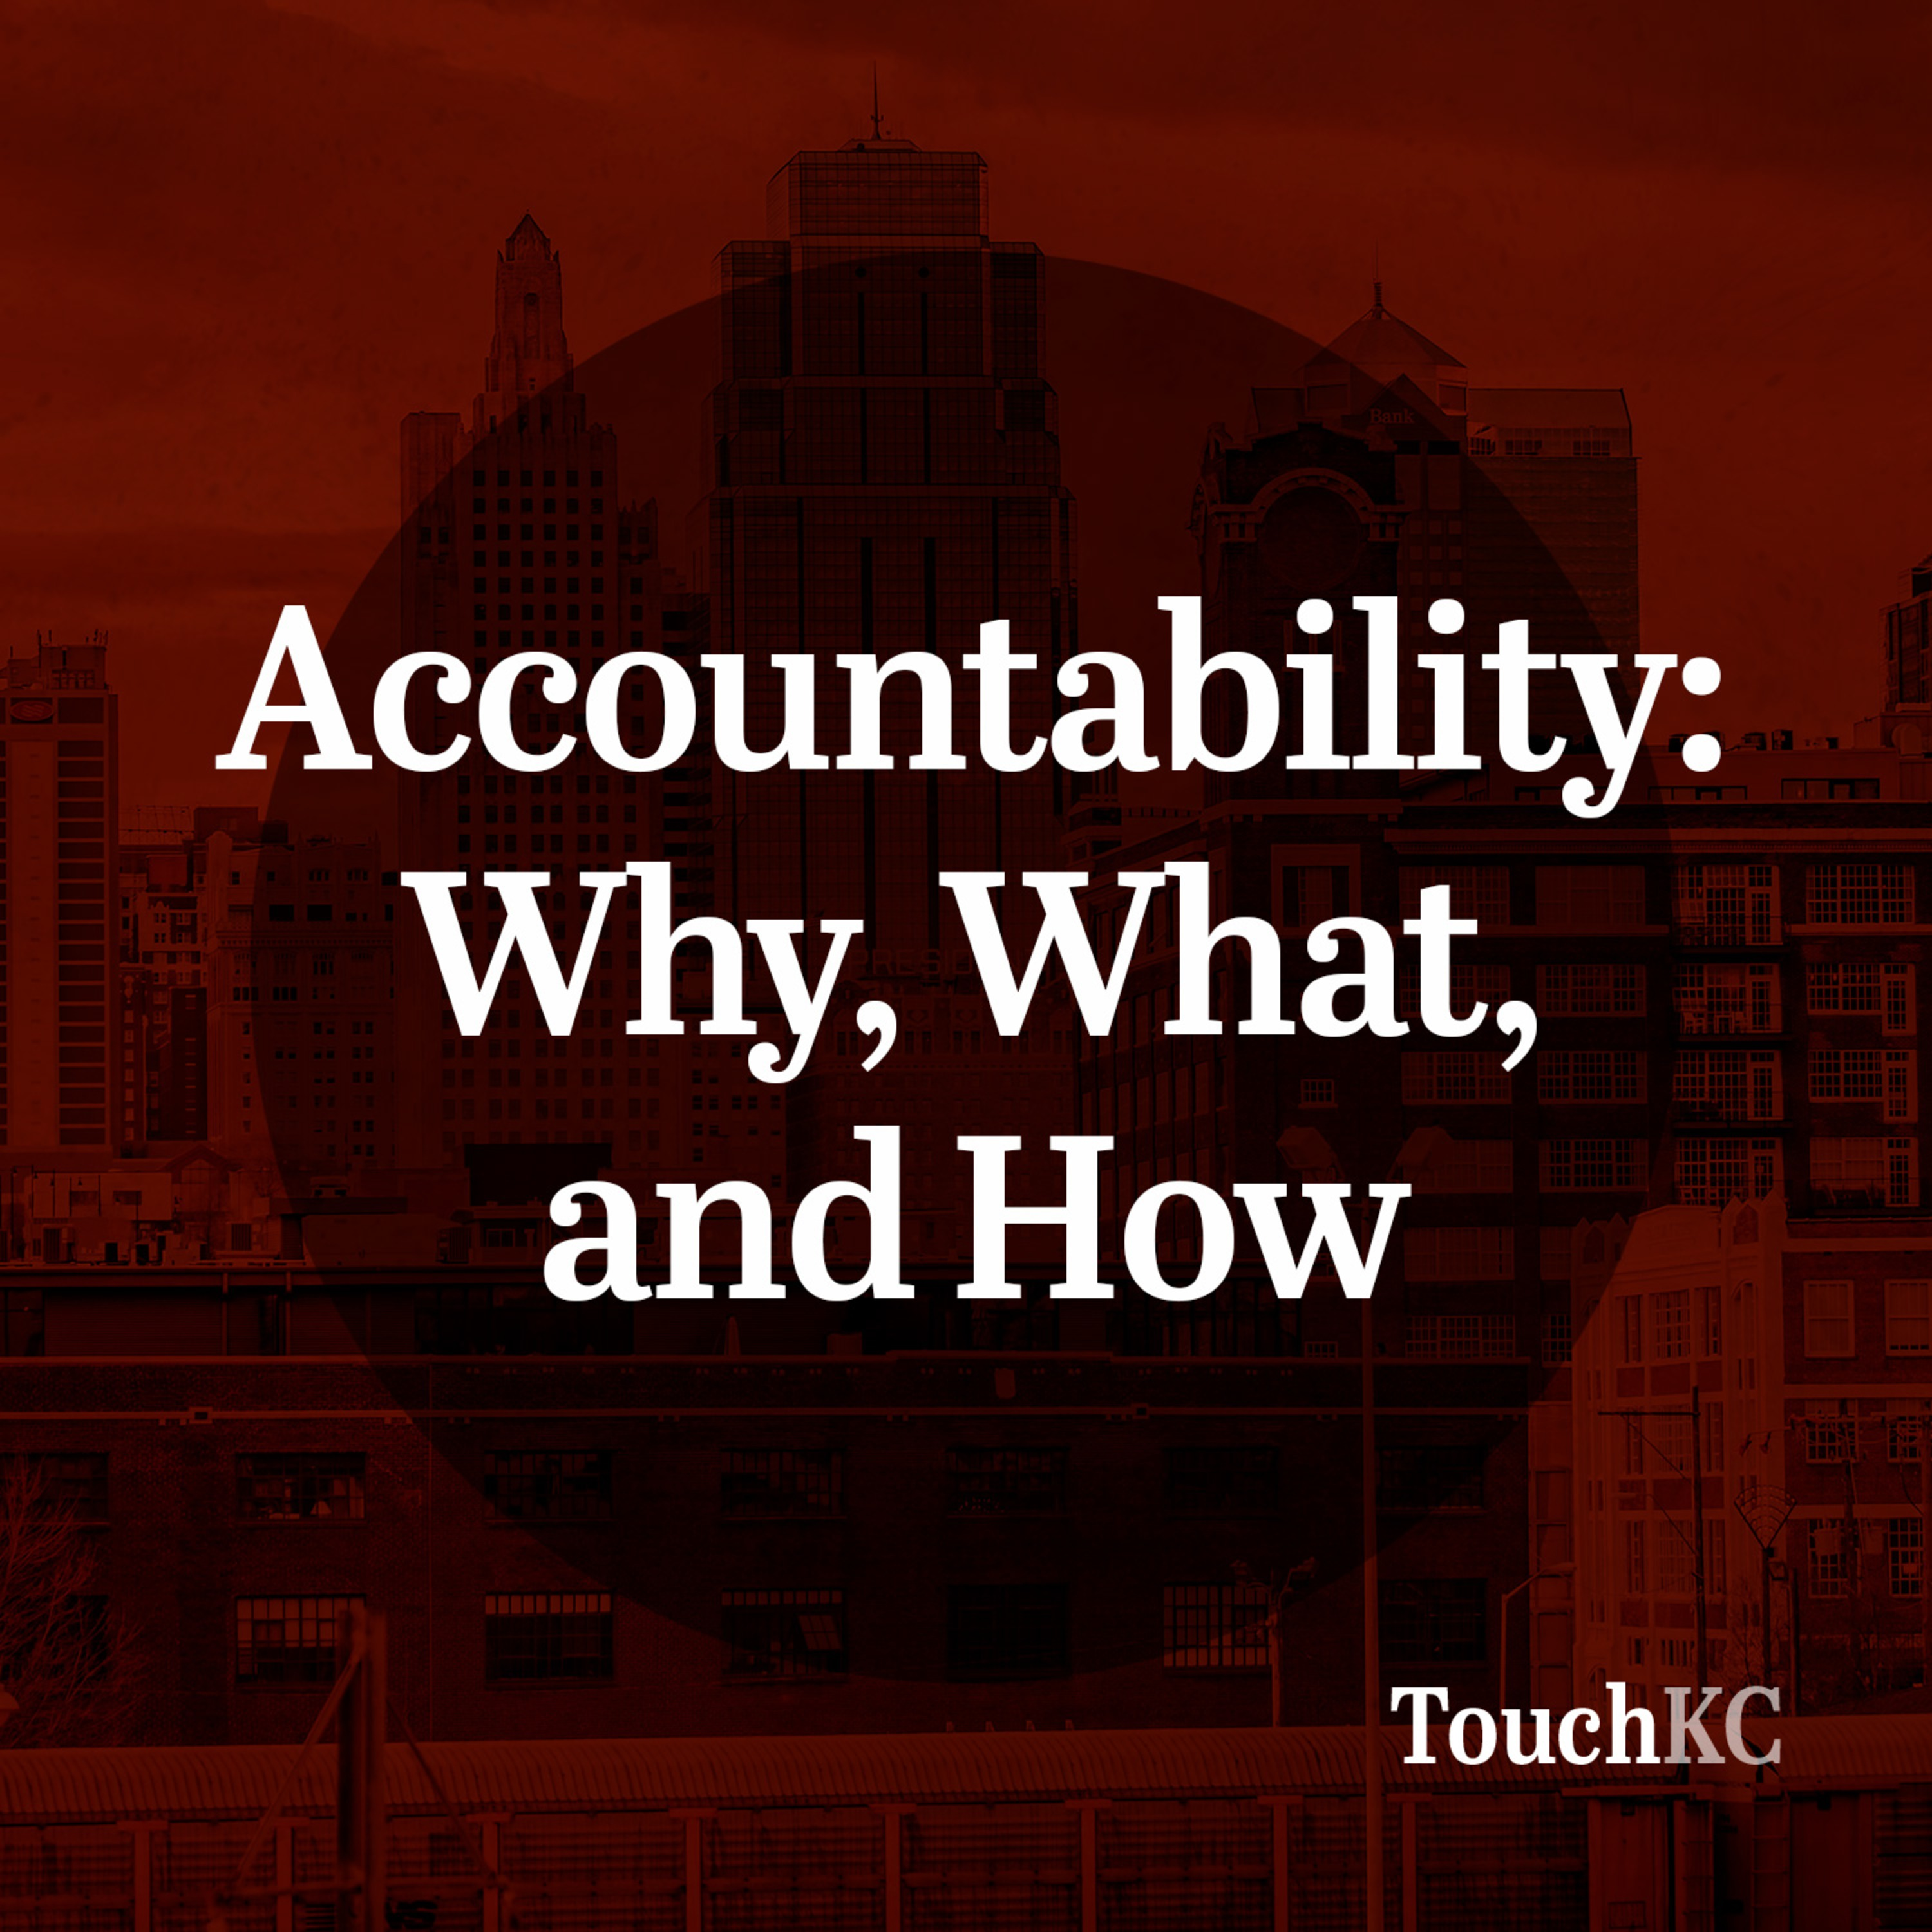 EP06 - Accountability: Why, What, and How